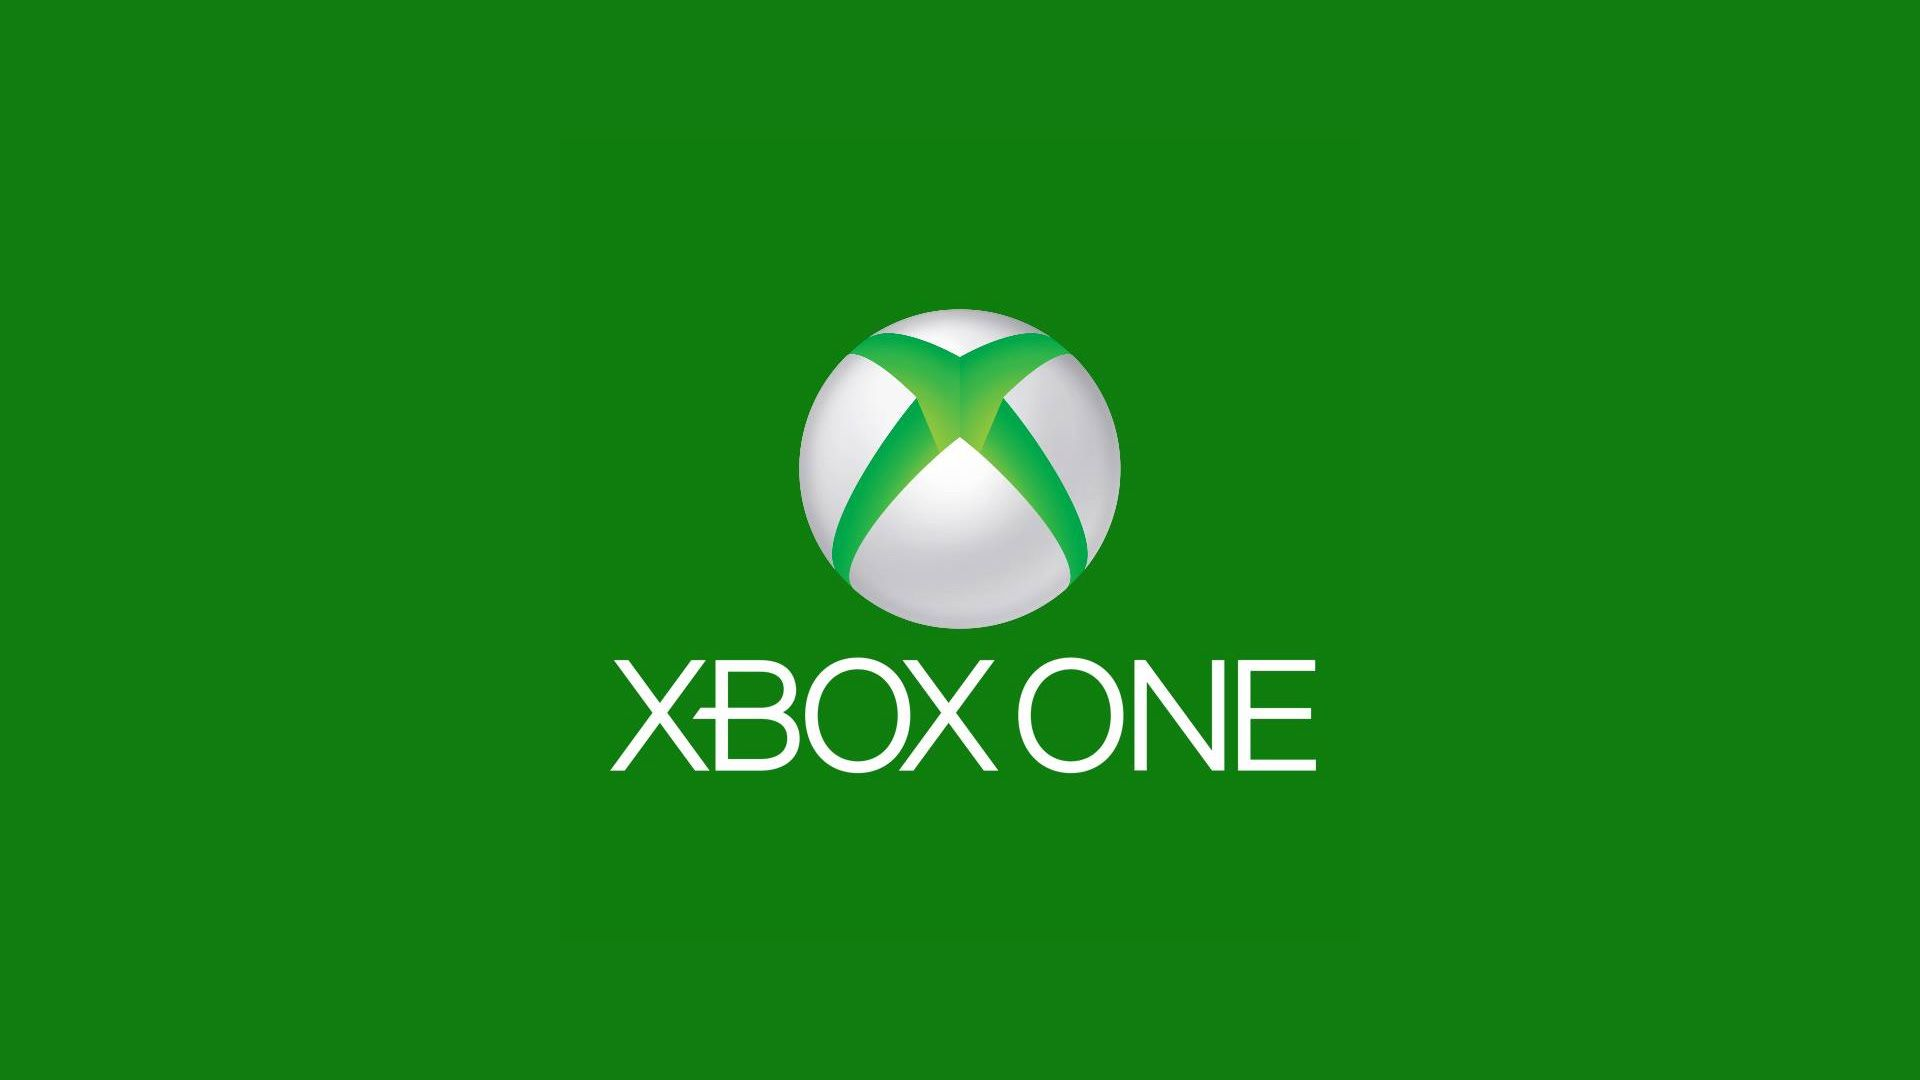 Xbox HD Wallpaper